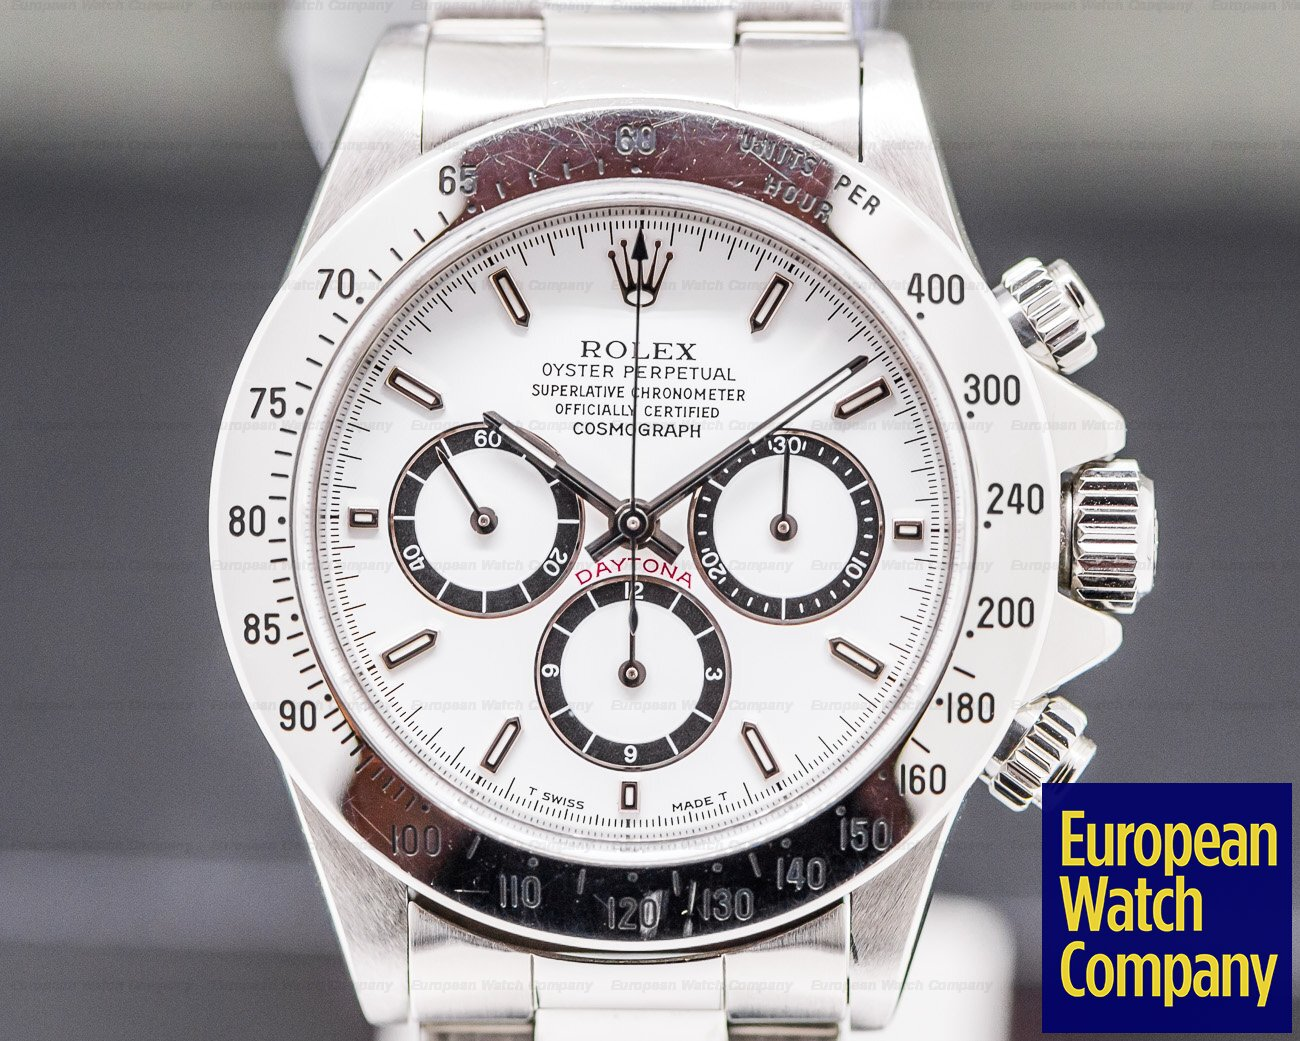 Rolex 16520 Daytona Zenith Movement White Dial SS